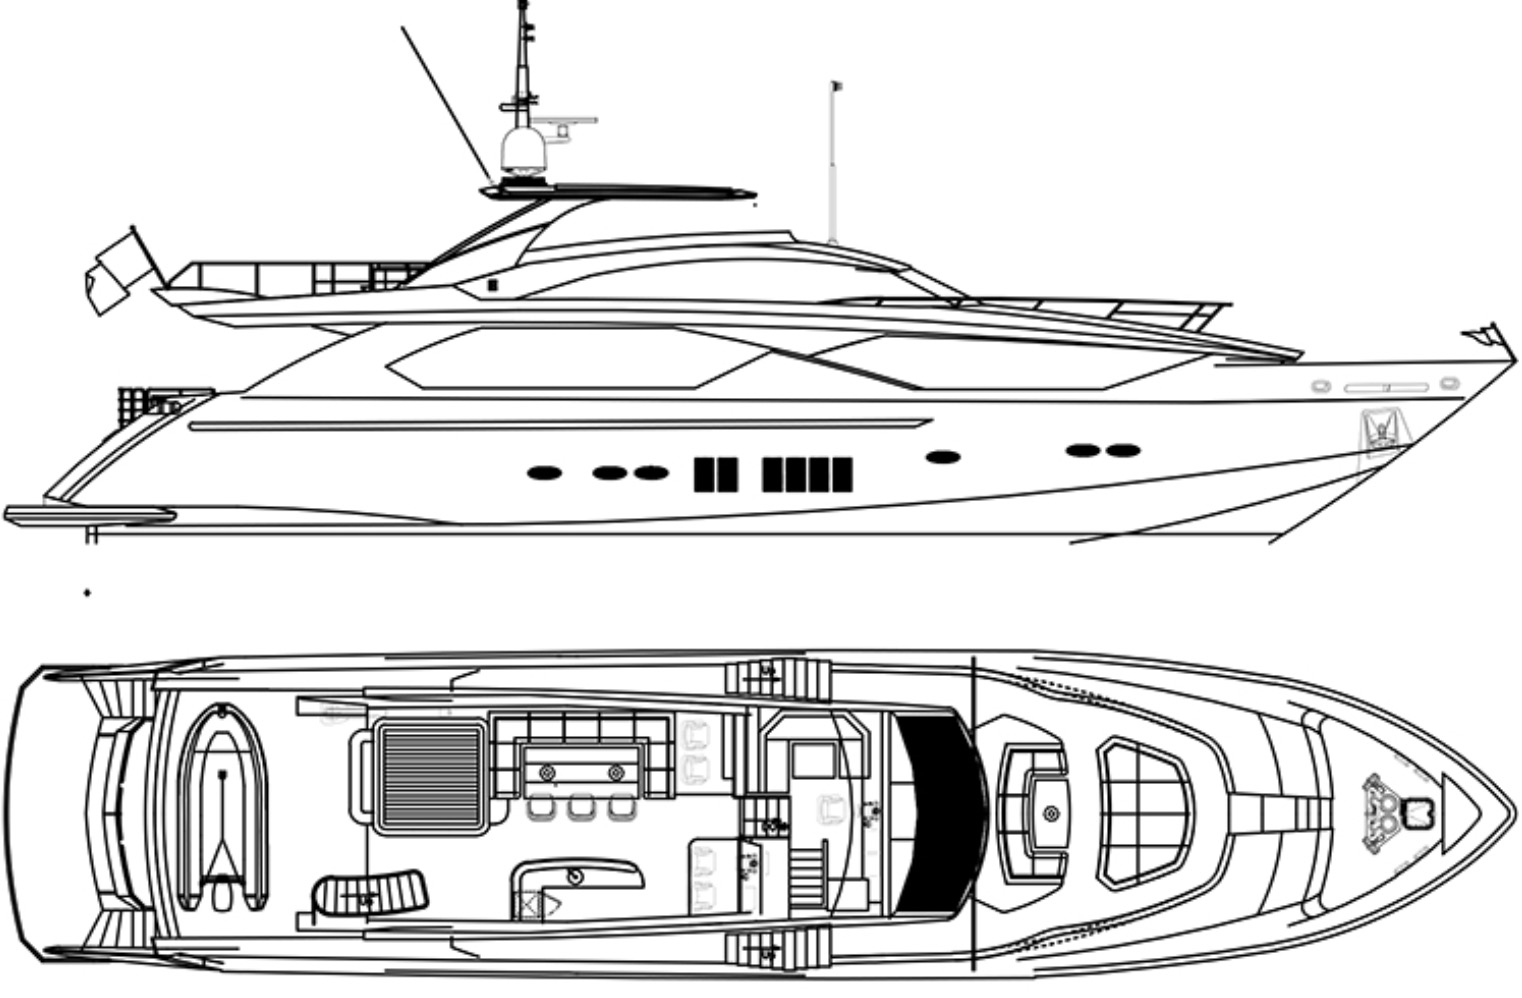 4166: New Build - Kingbay 1080 - 32.9m Motoryacht - 095.jpg